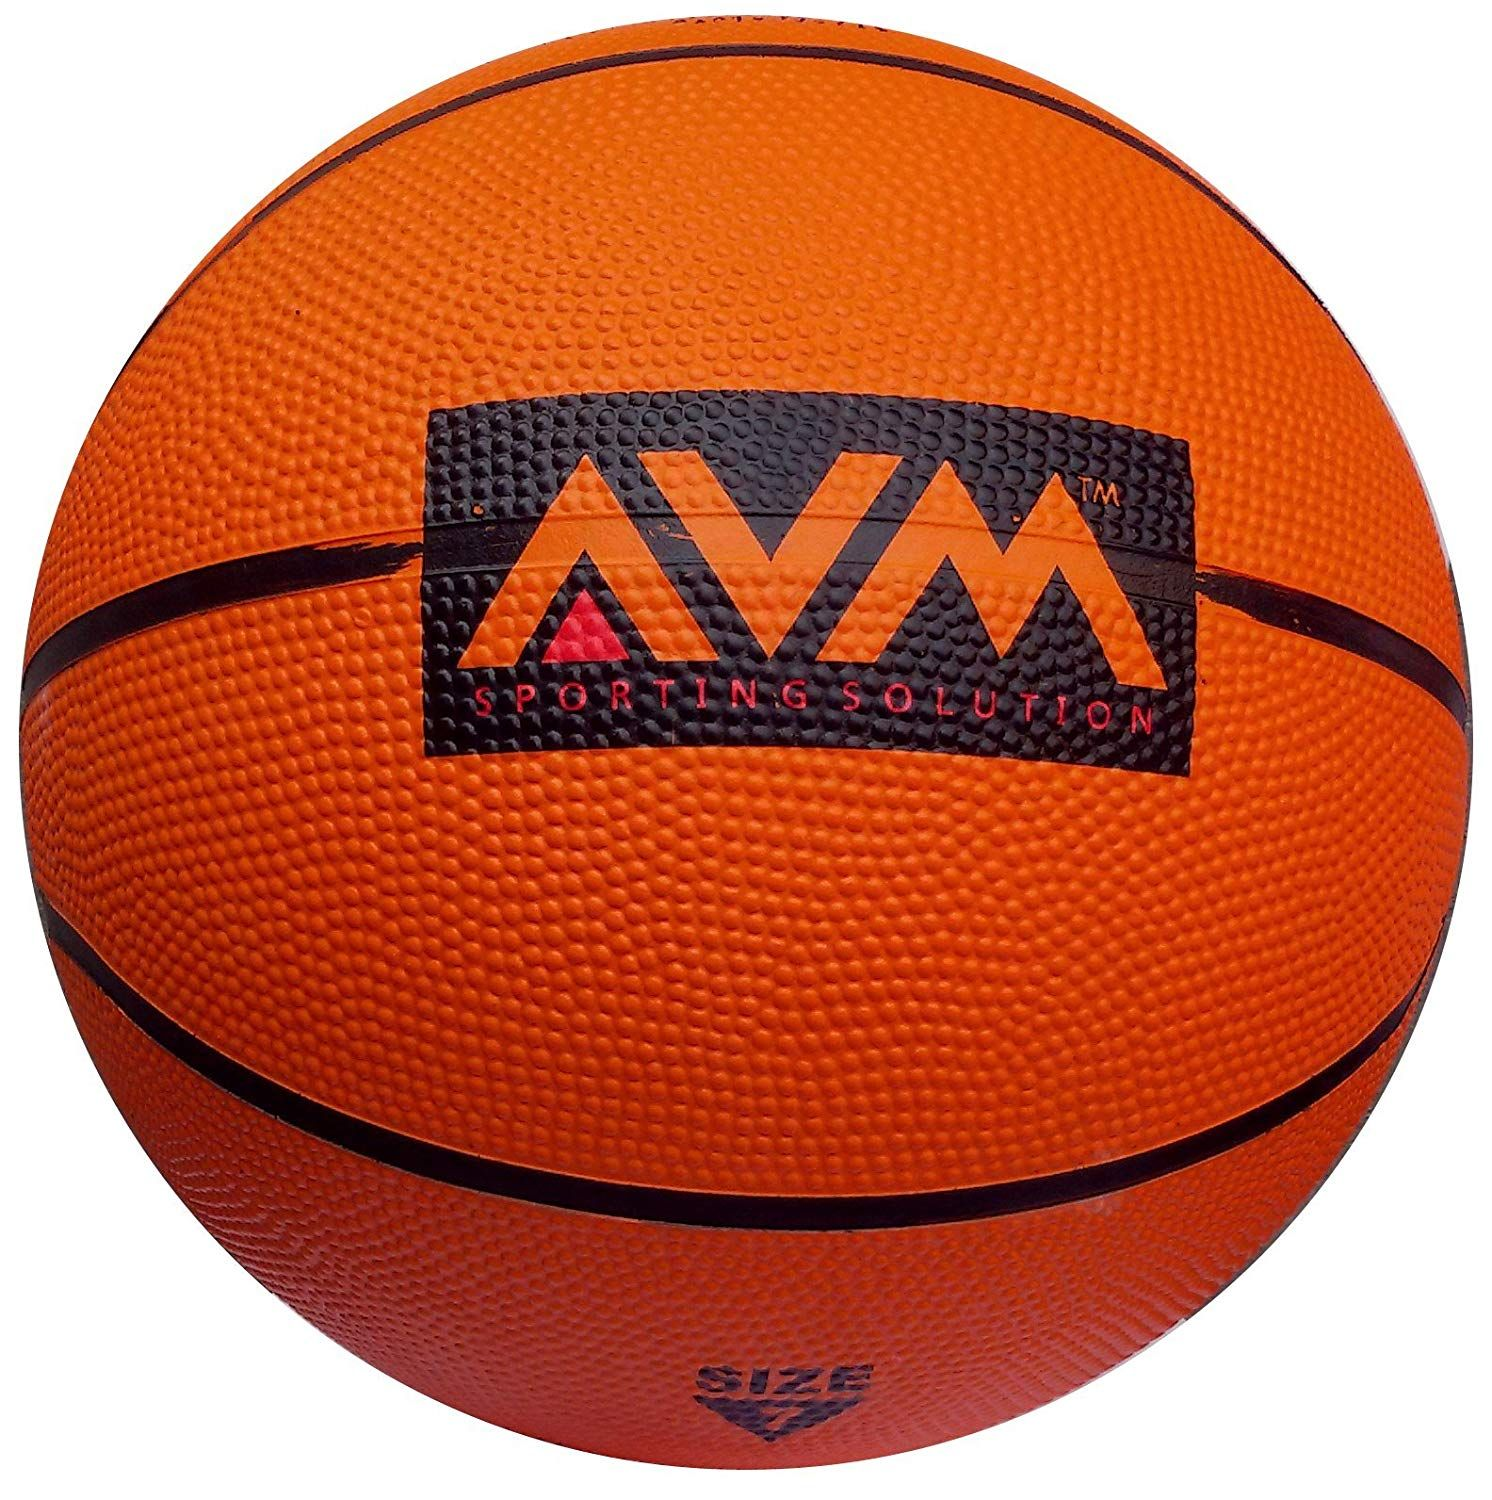 Buy Avm Basket Ball No 3 With Box By Undefined On Paytm Price Rs 299 Utm Medium Pintrest Basket Ball Stuff To Buy